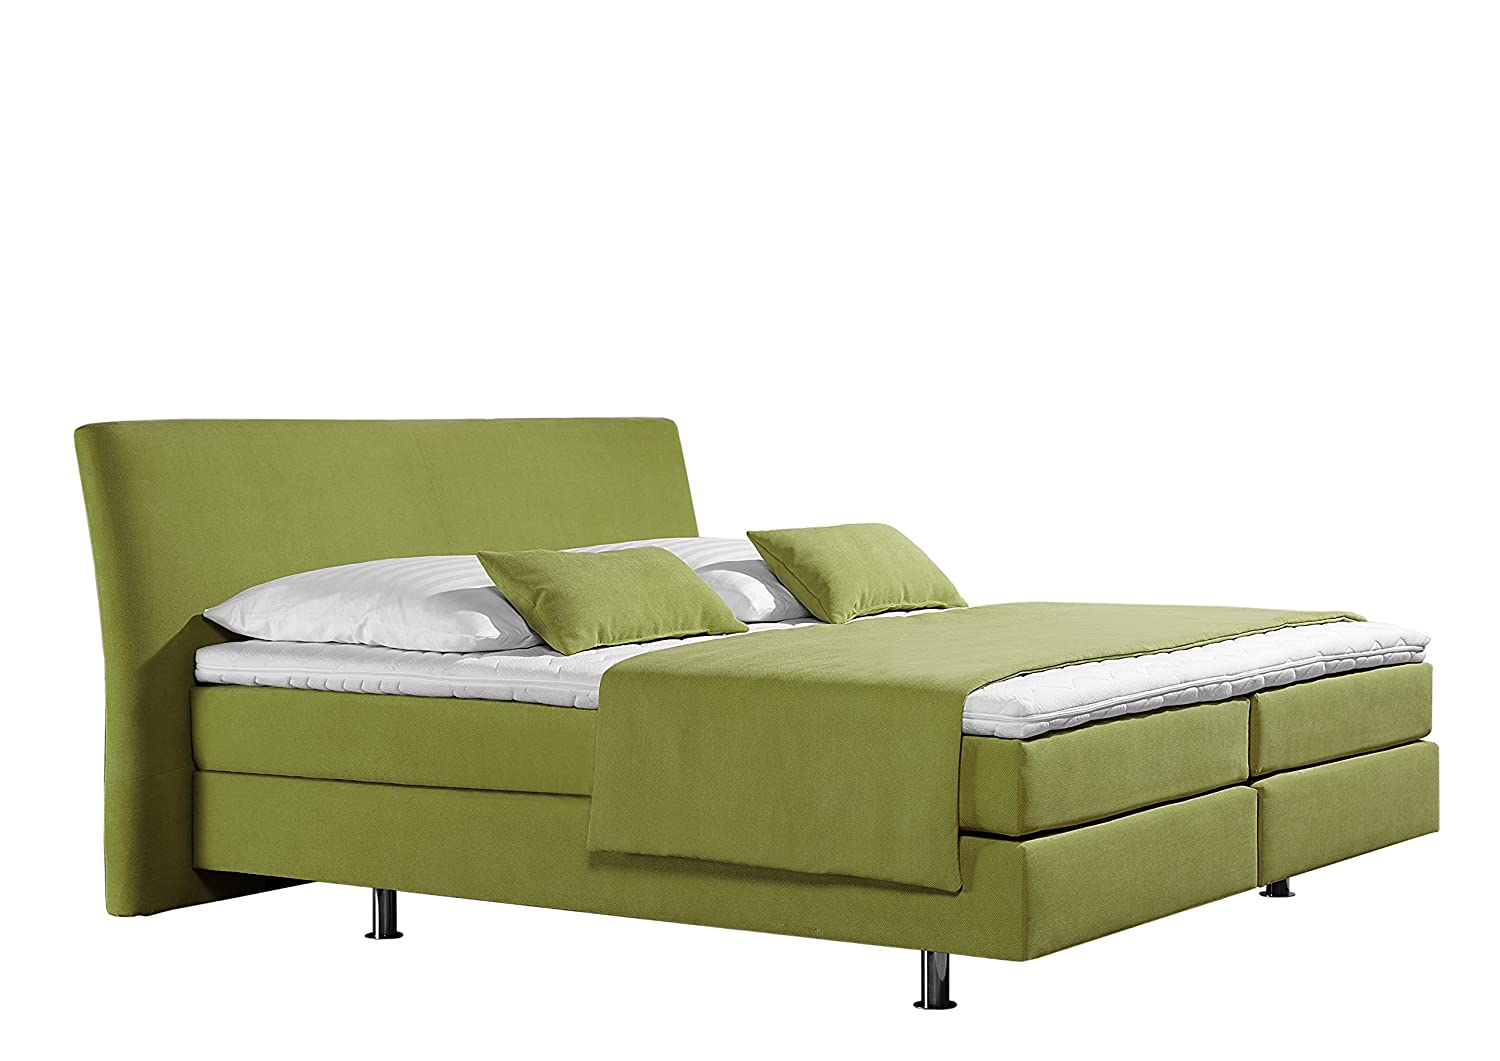 Maintal Betten 237373-4173 Box springbett Club 180 x 200 cm, Strukturstoff lemon